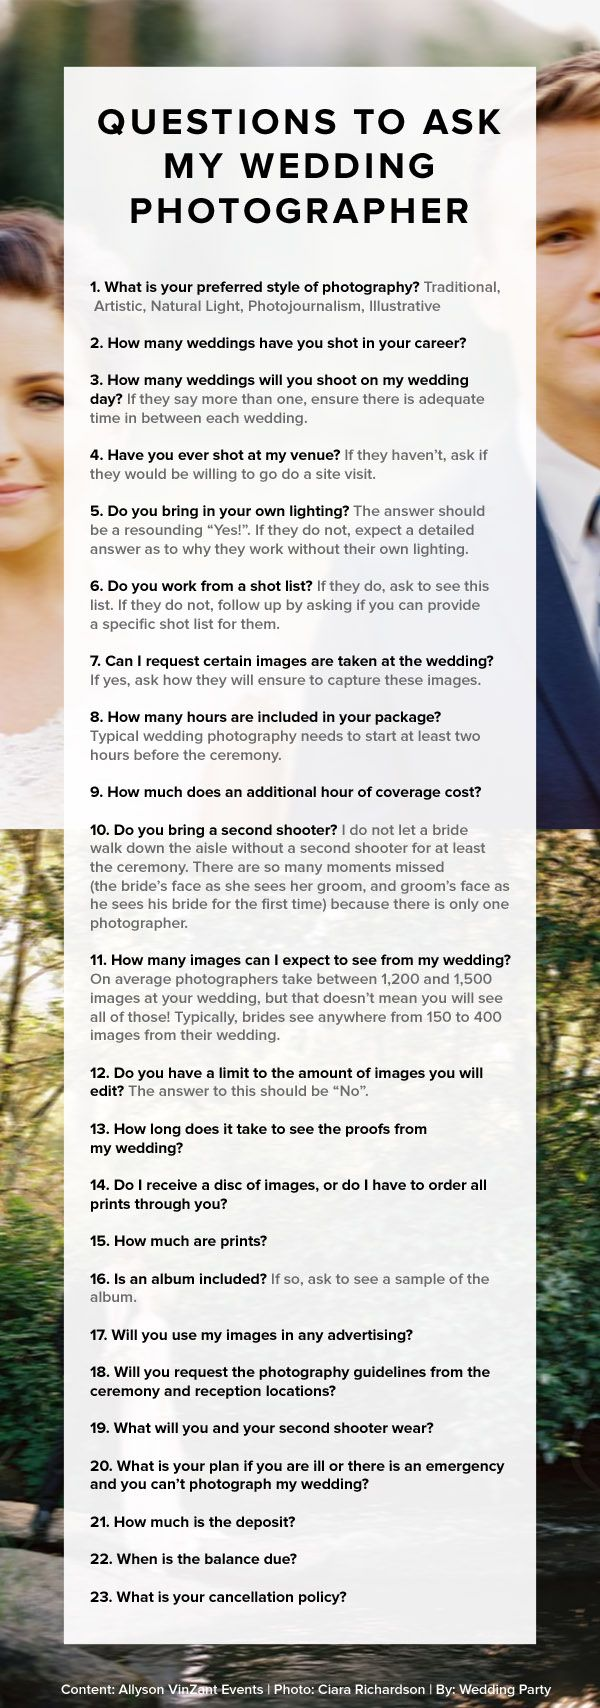 Questions to ask my wedding photographer by Allyson VinZant Events - Wedding Party